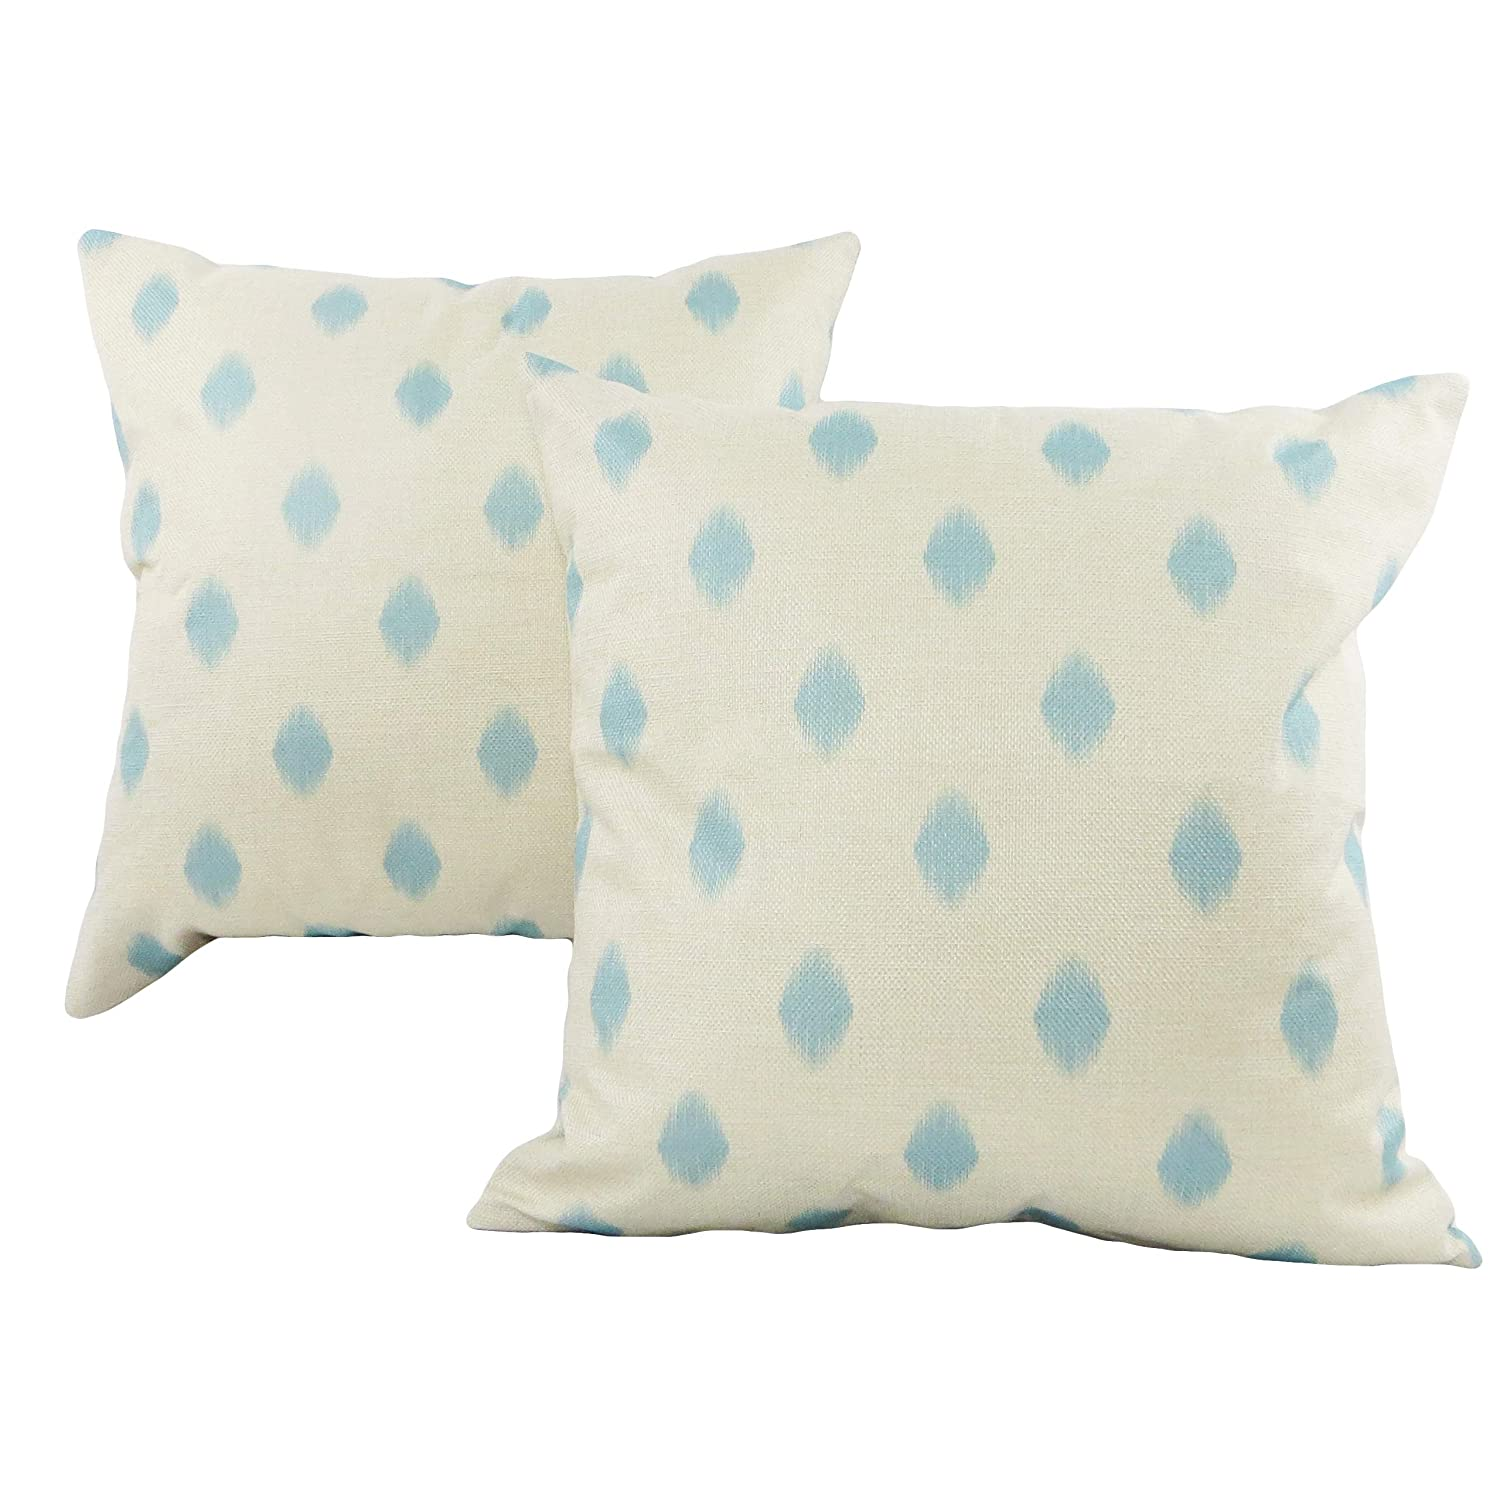 Minimalist Design Set of 2 Decorative Accent Throw Pillow Covers 18x18 in Cushion Cases with Zipper Turquoise Blue and Natural White Ikat Tribal Boho Perfect for Sofa Couch Bed or Desk